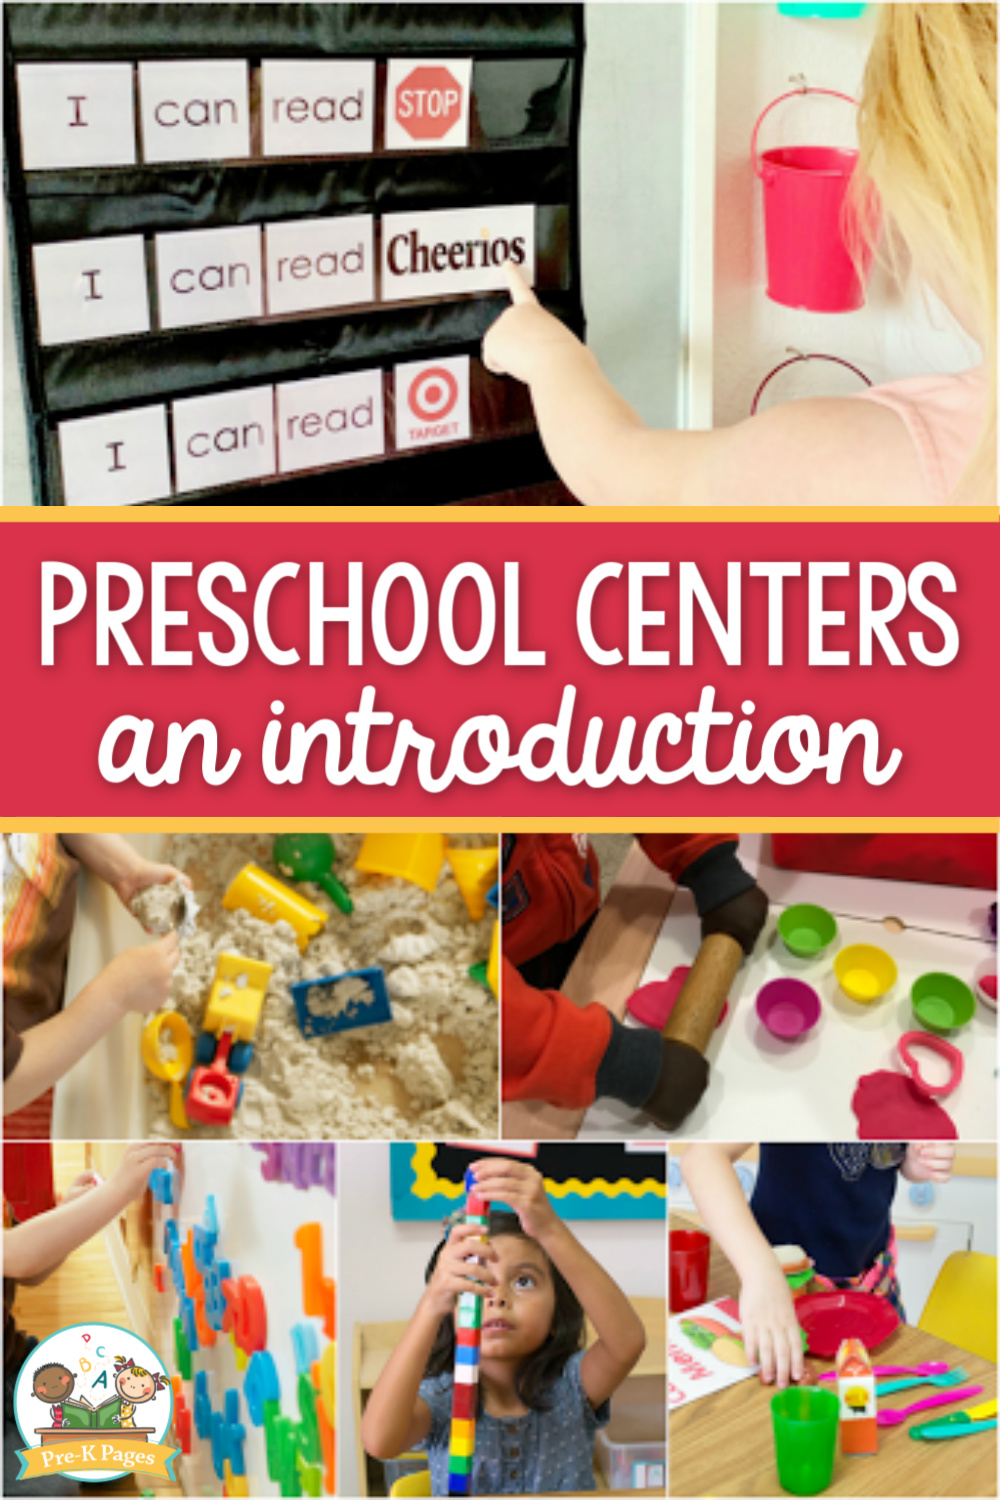 An Introduction to Preschool Centers